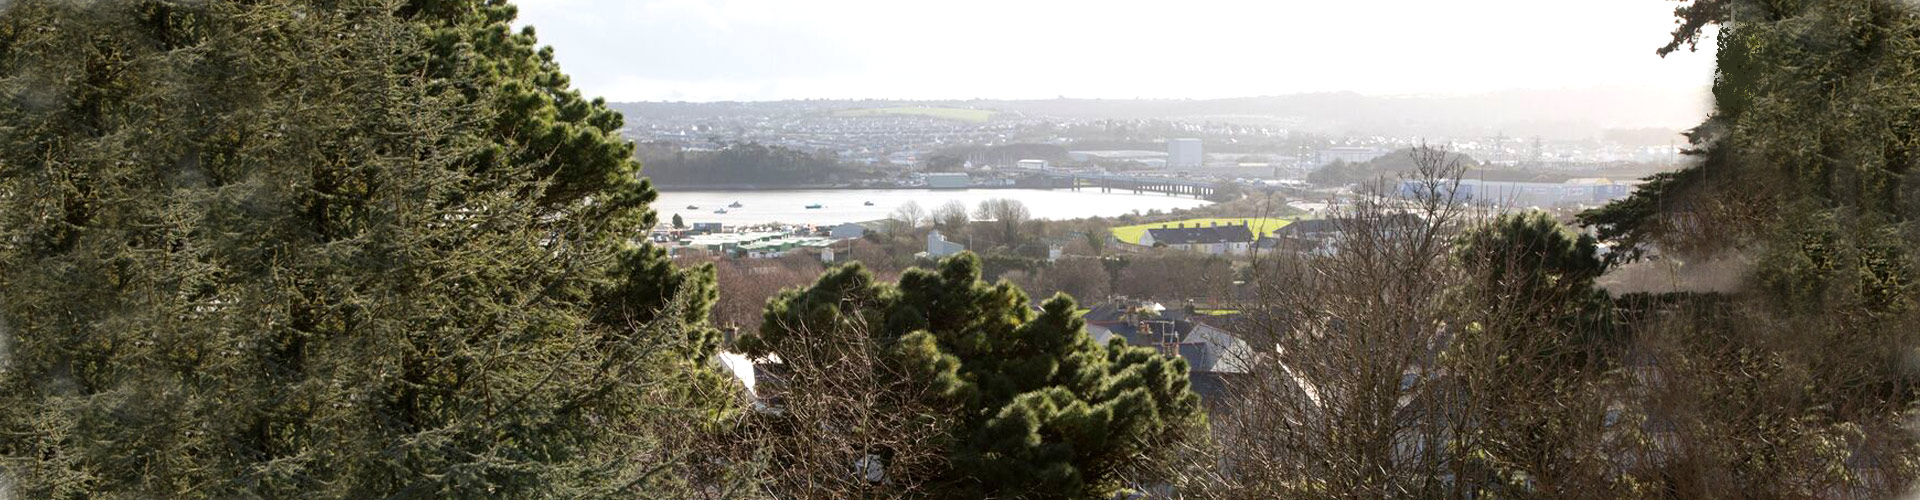 arial view over Plymouth